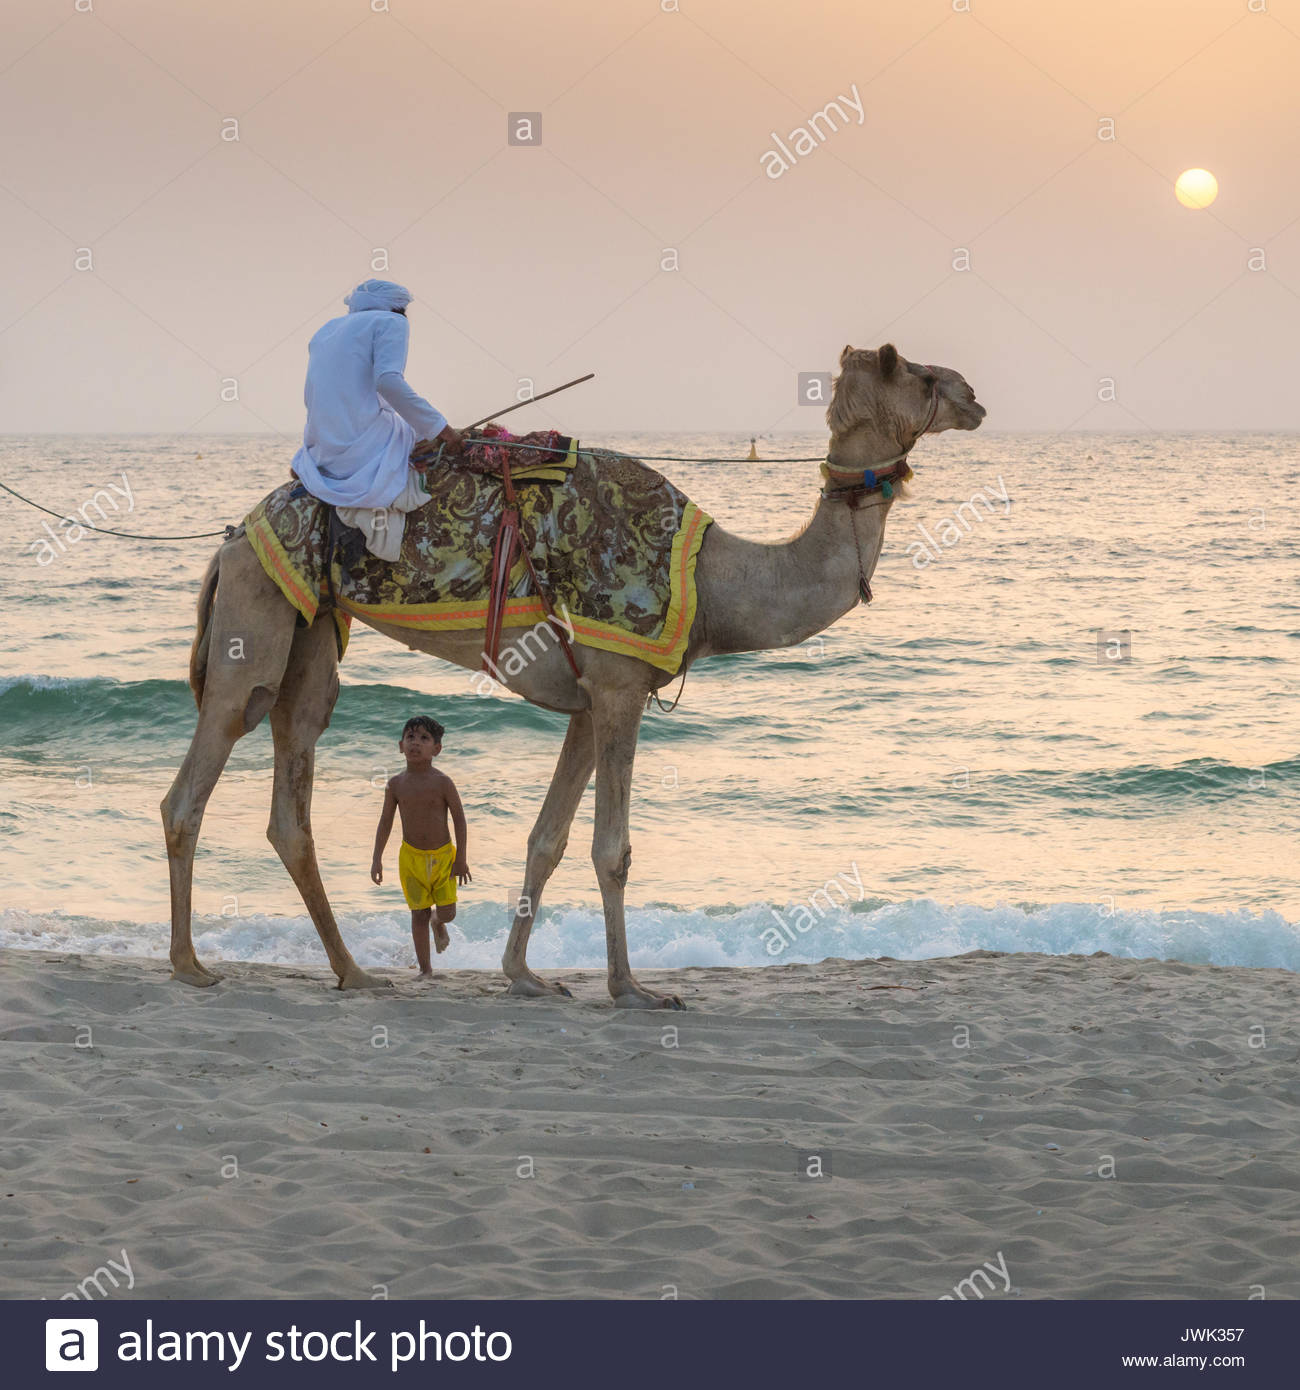 A boy and a camel in Jumeirah Beach Residence, Dubai, United Arab Emirates (UAE) - Stock Image